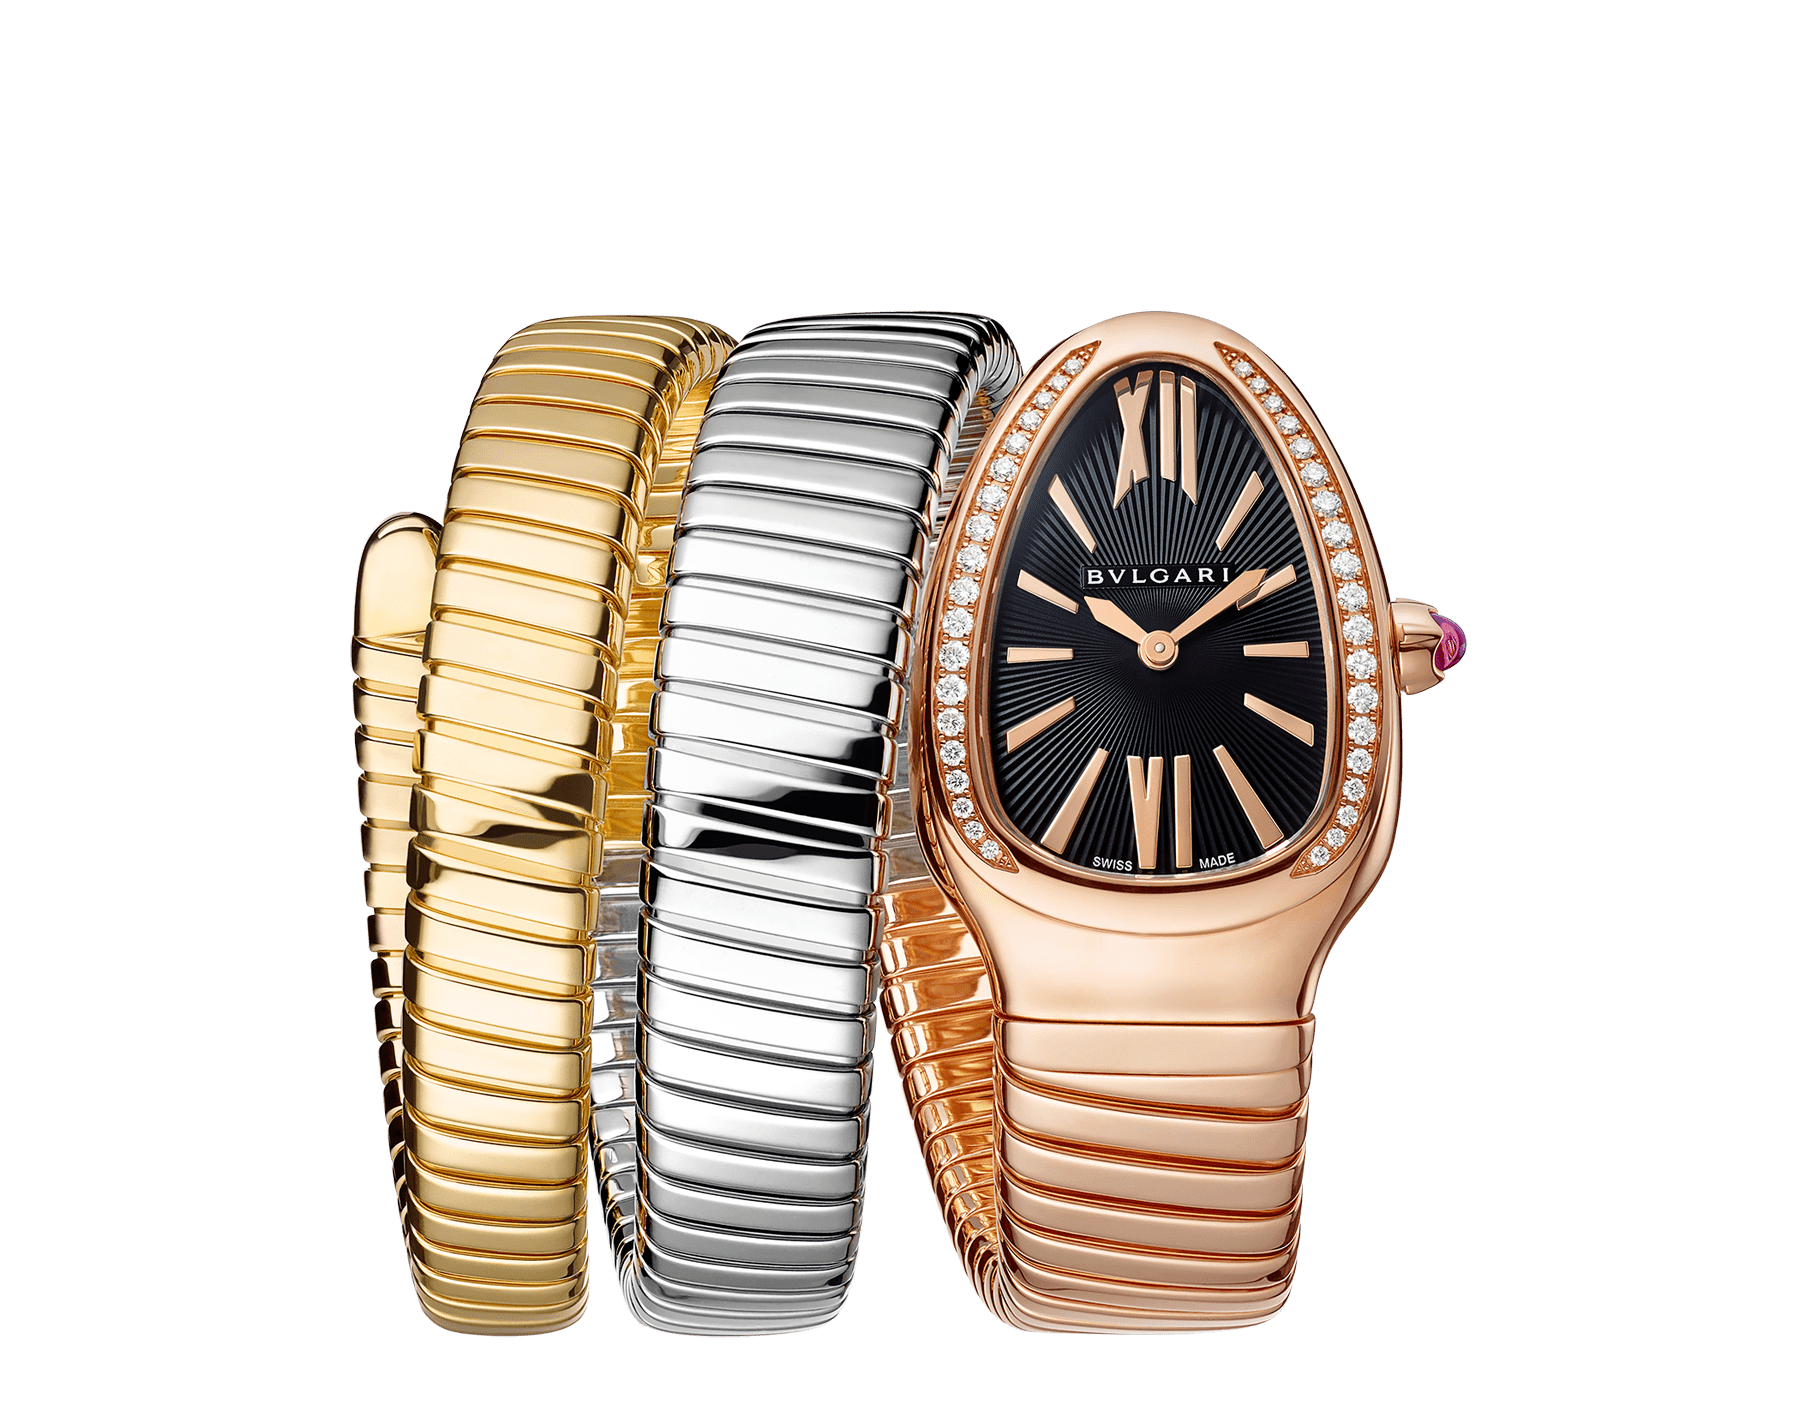 Serpenti Tubogas double spiral watch with 18 kt rose gold case set with round brilliant-cut diamonds, black opaline dial and 18 kt rose, yellow and white gold bracelet 102948 image 1